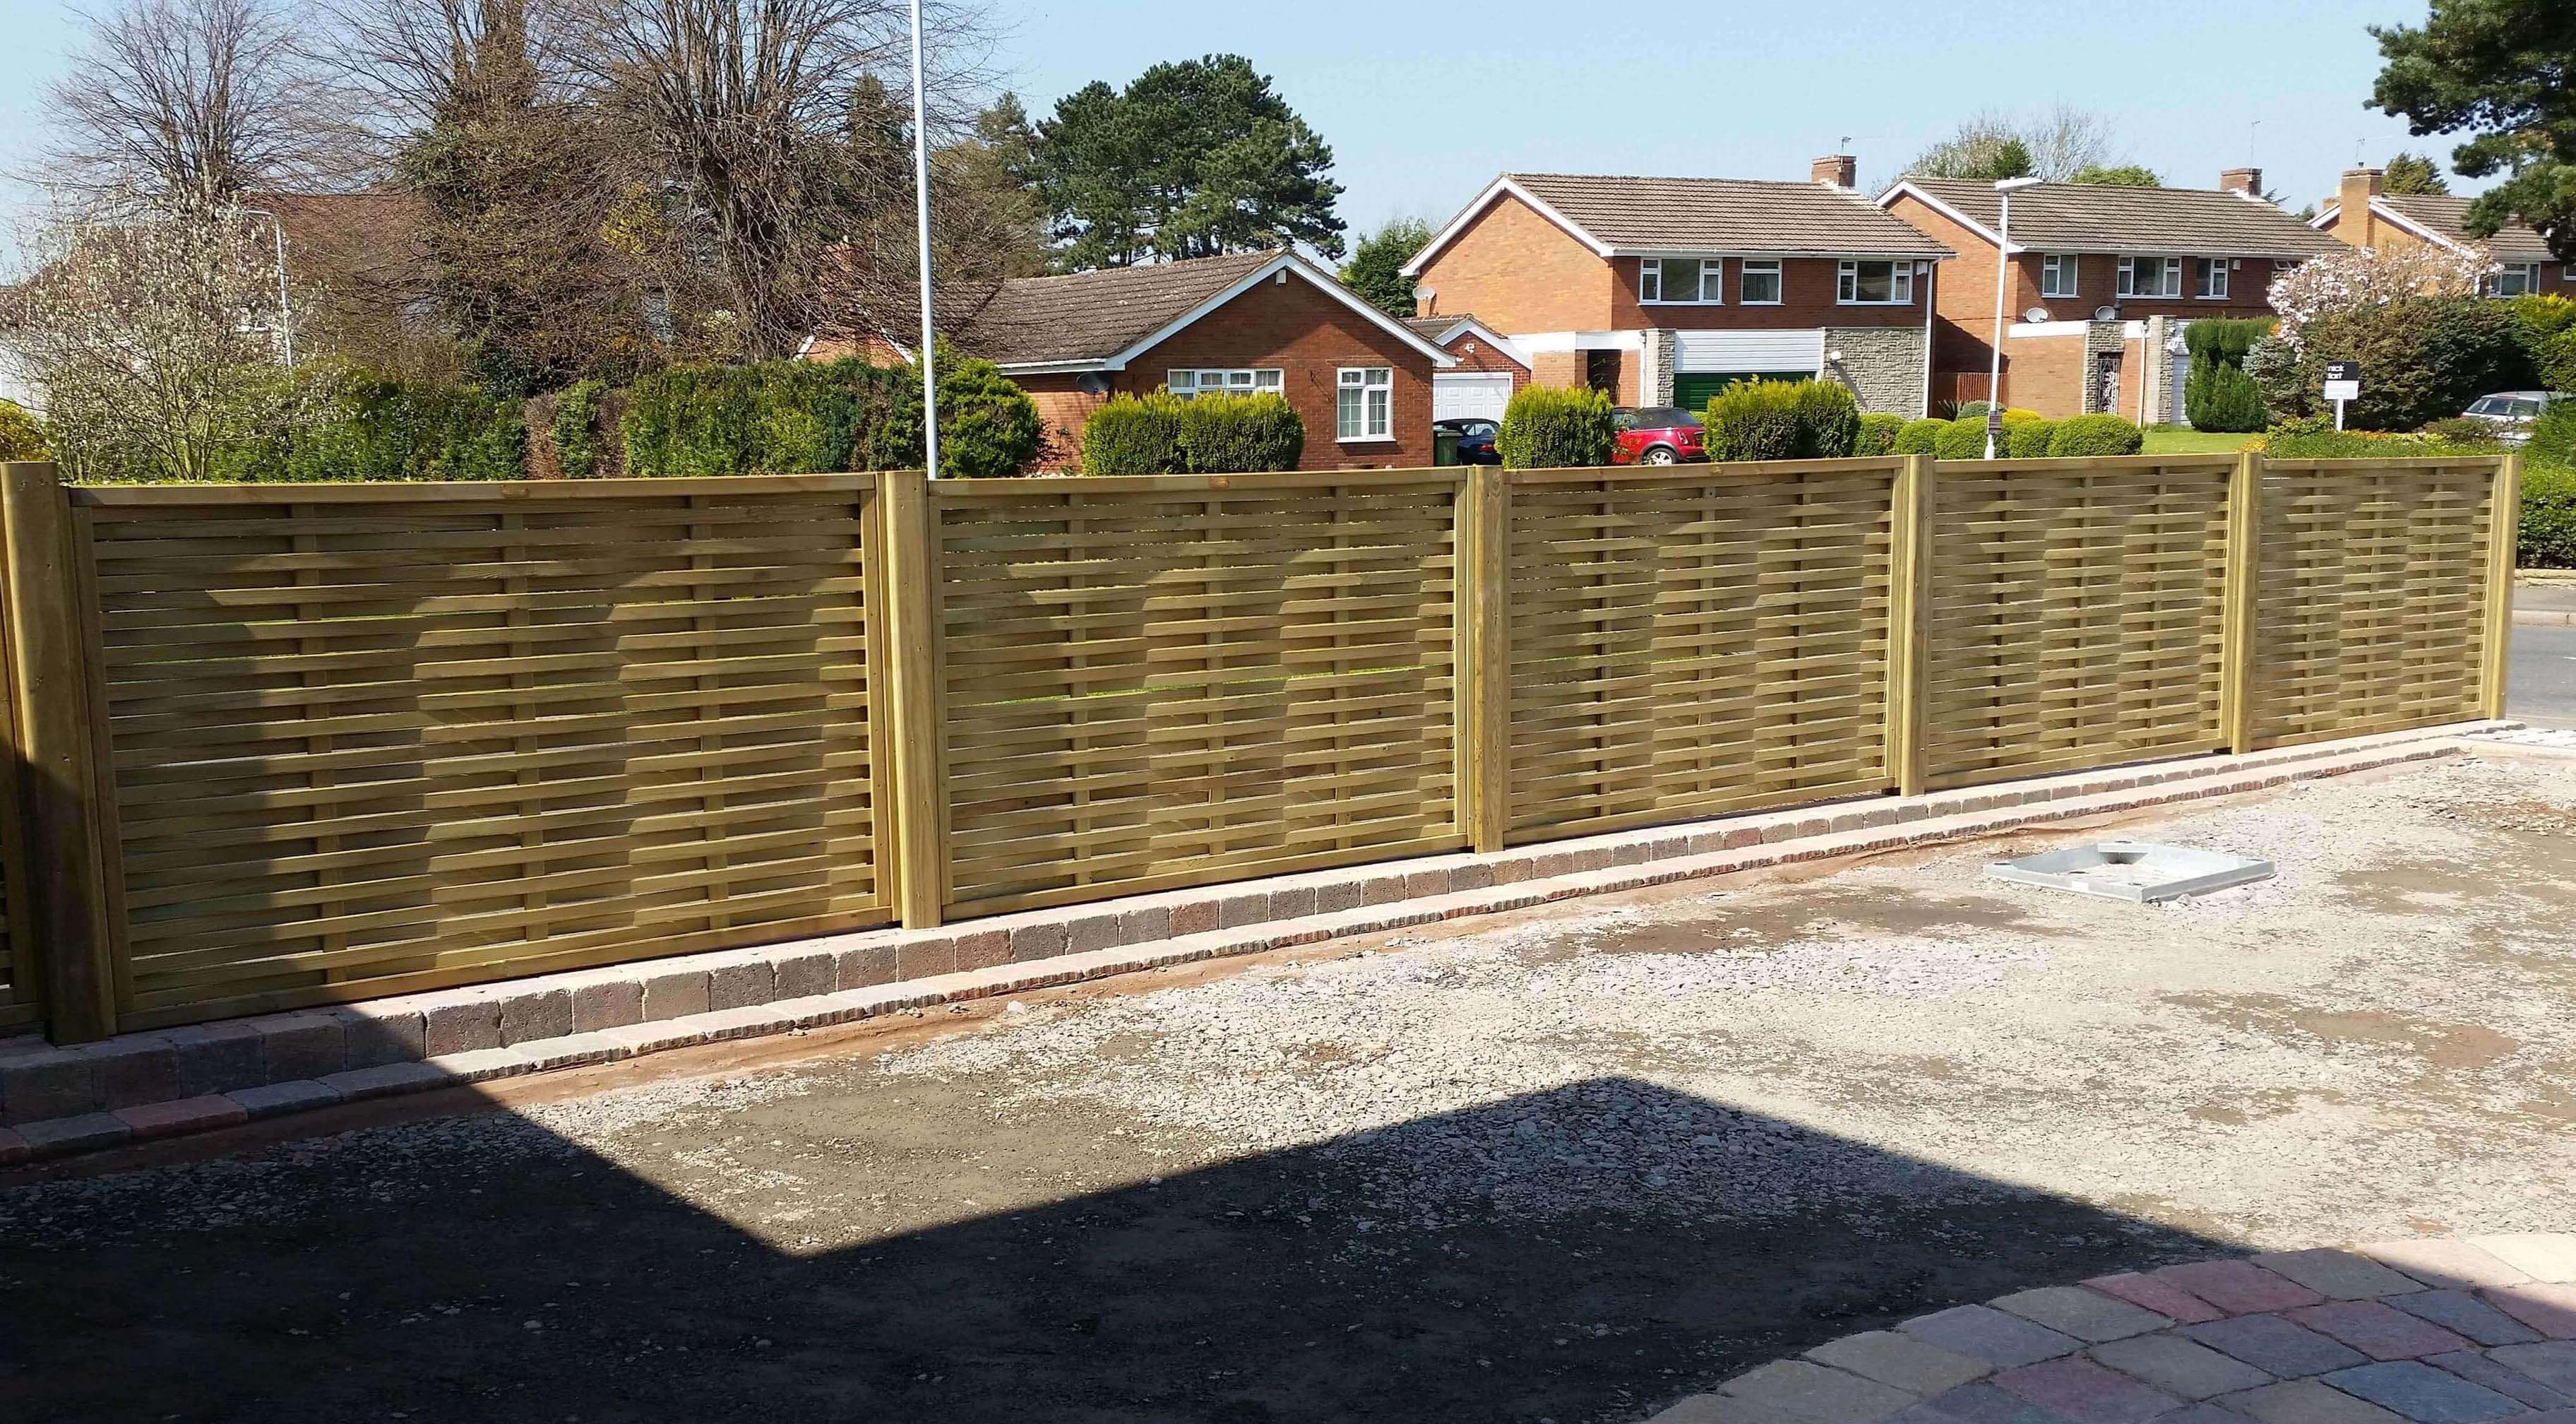 Woven fence panels installed on drive